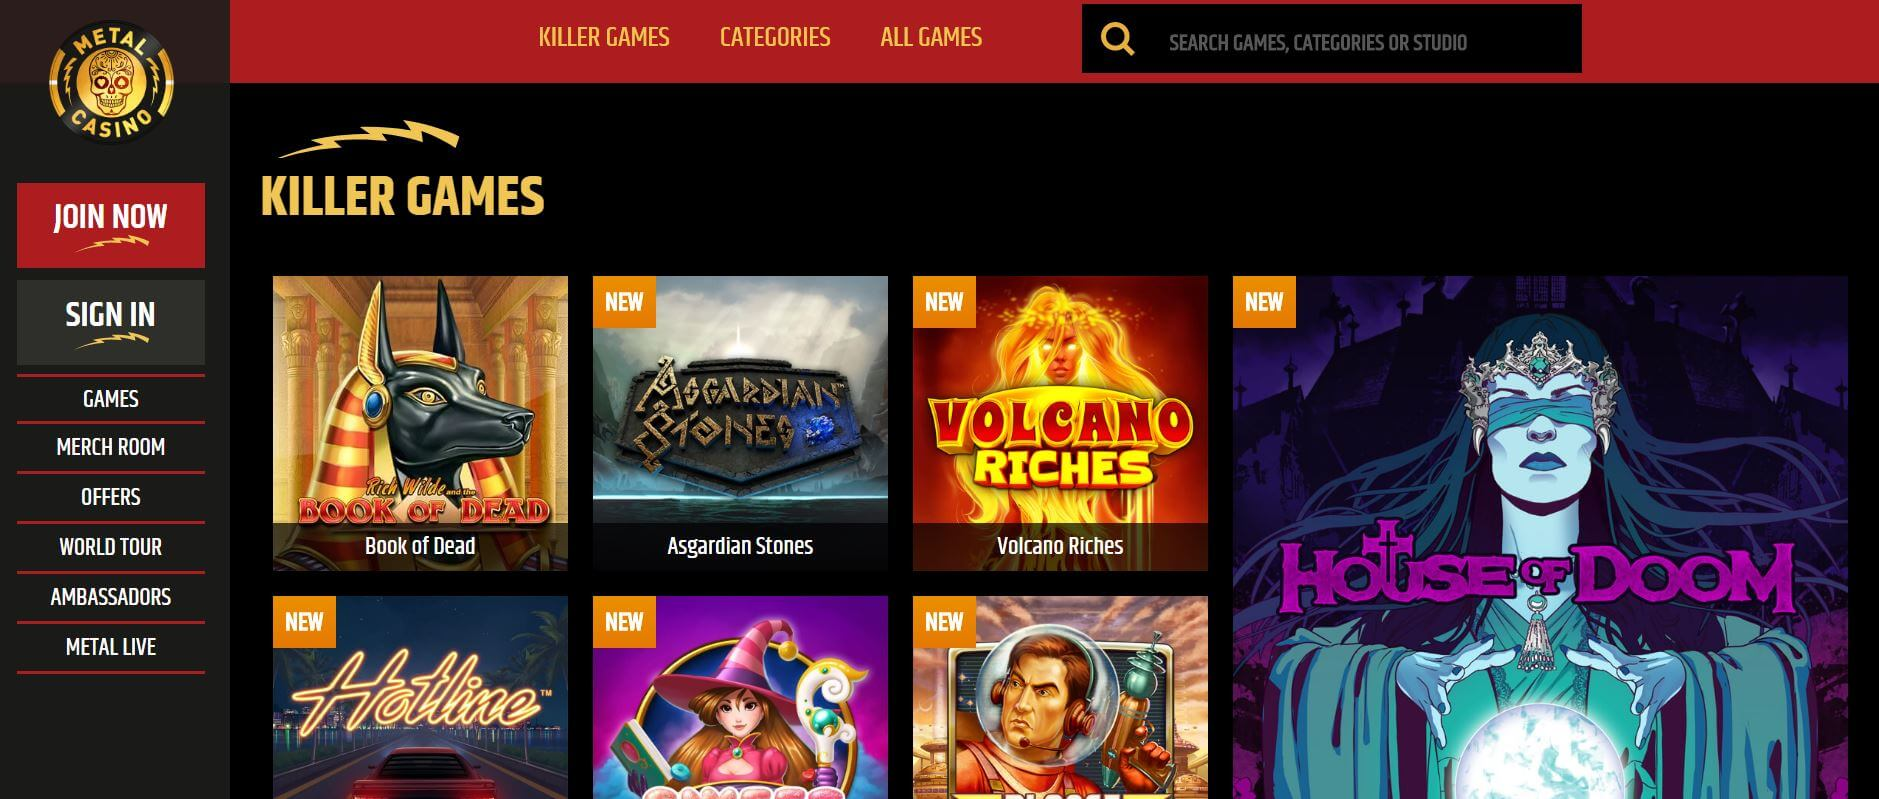 An image of the metal casino games page